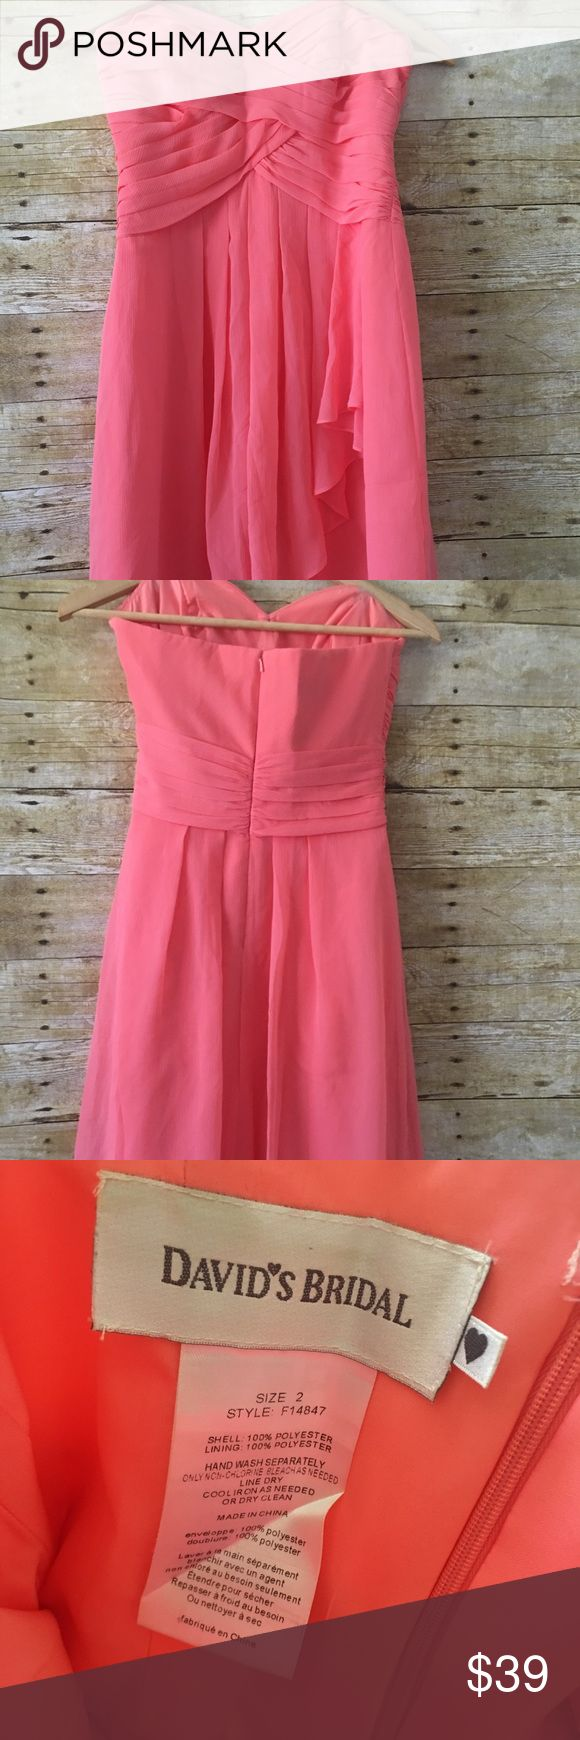 Bridesmaid dress from davids bridal. Coral bridesmaid dress worn once to a wedding. No rips,holes, or stains. David's Bridal Dresses Strapless